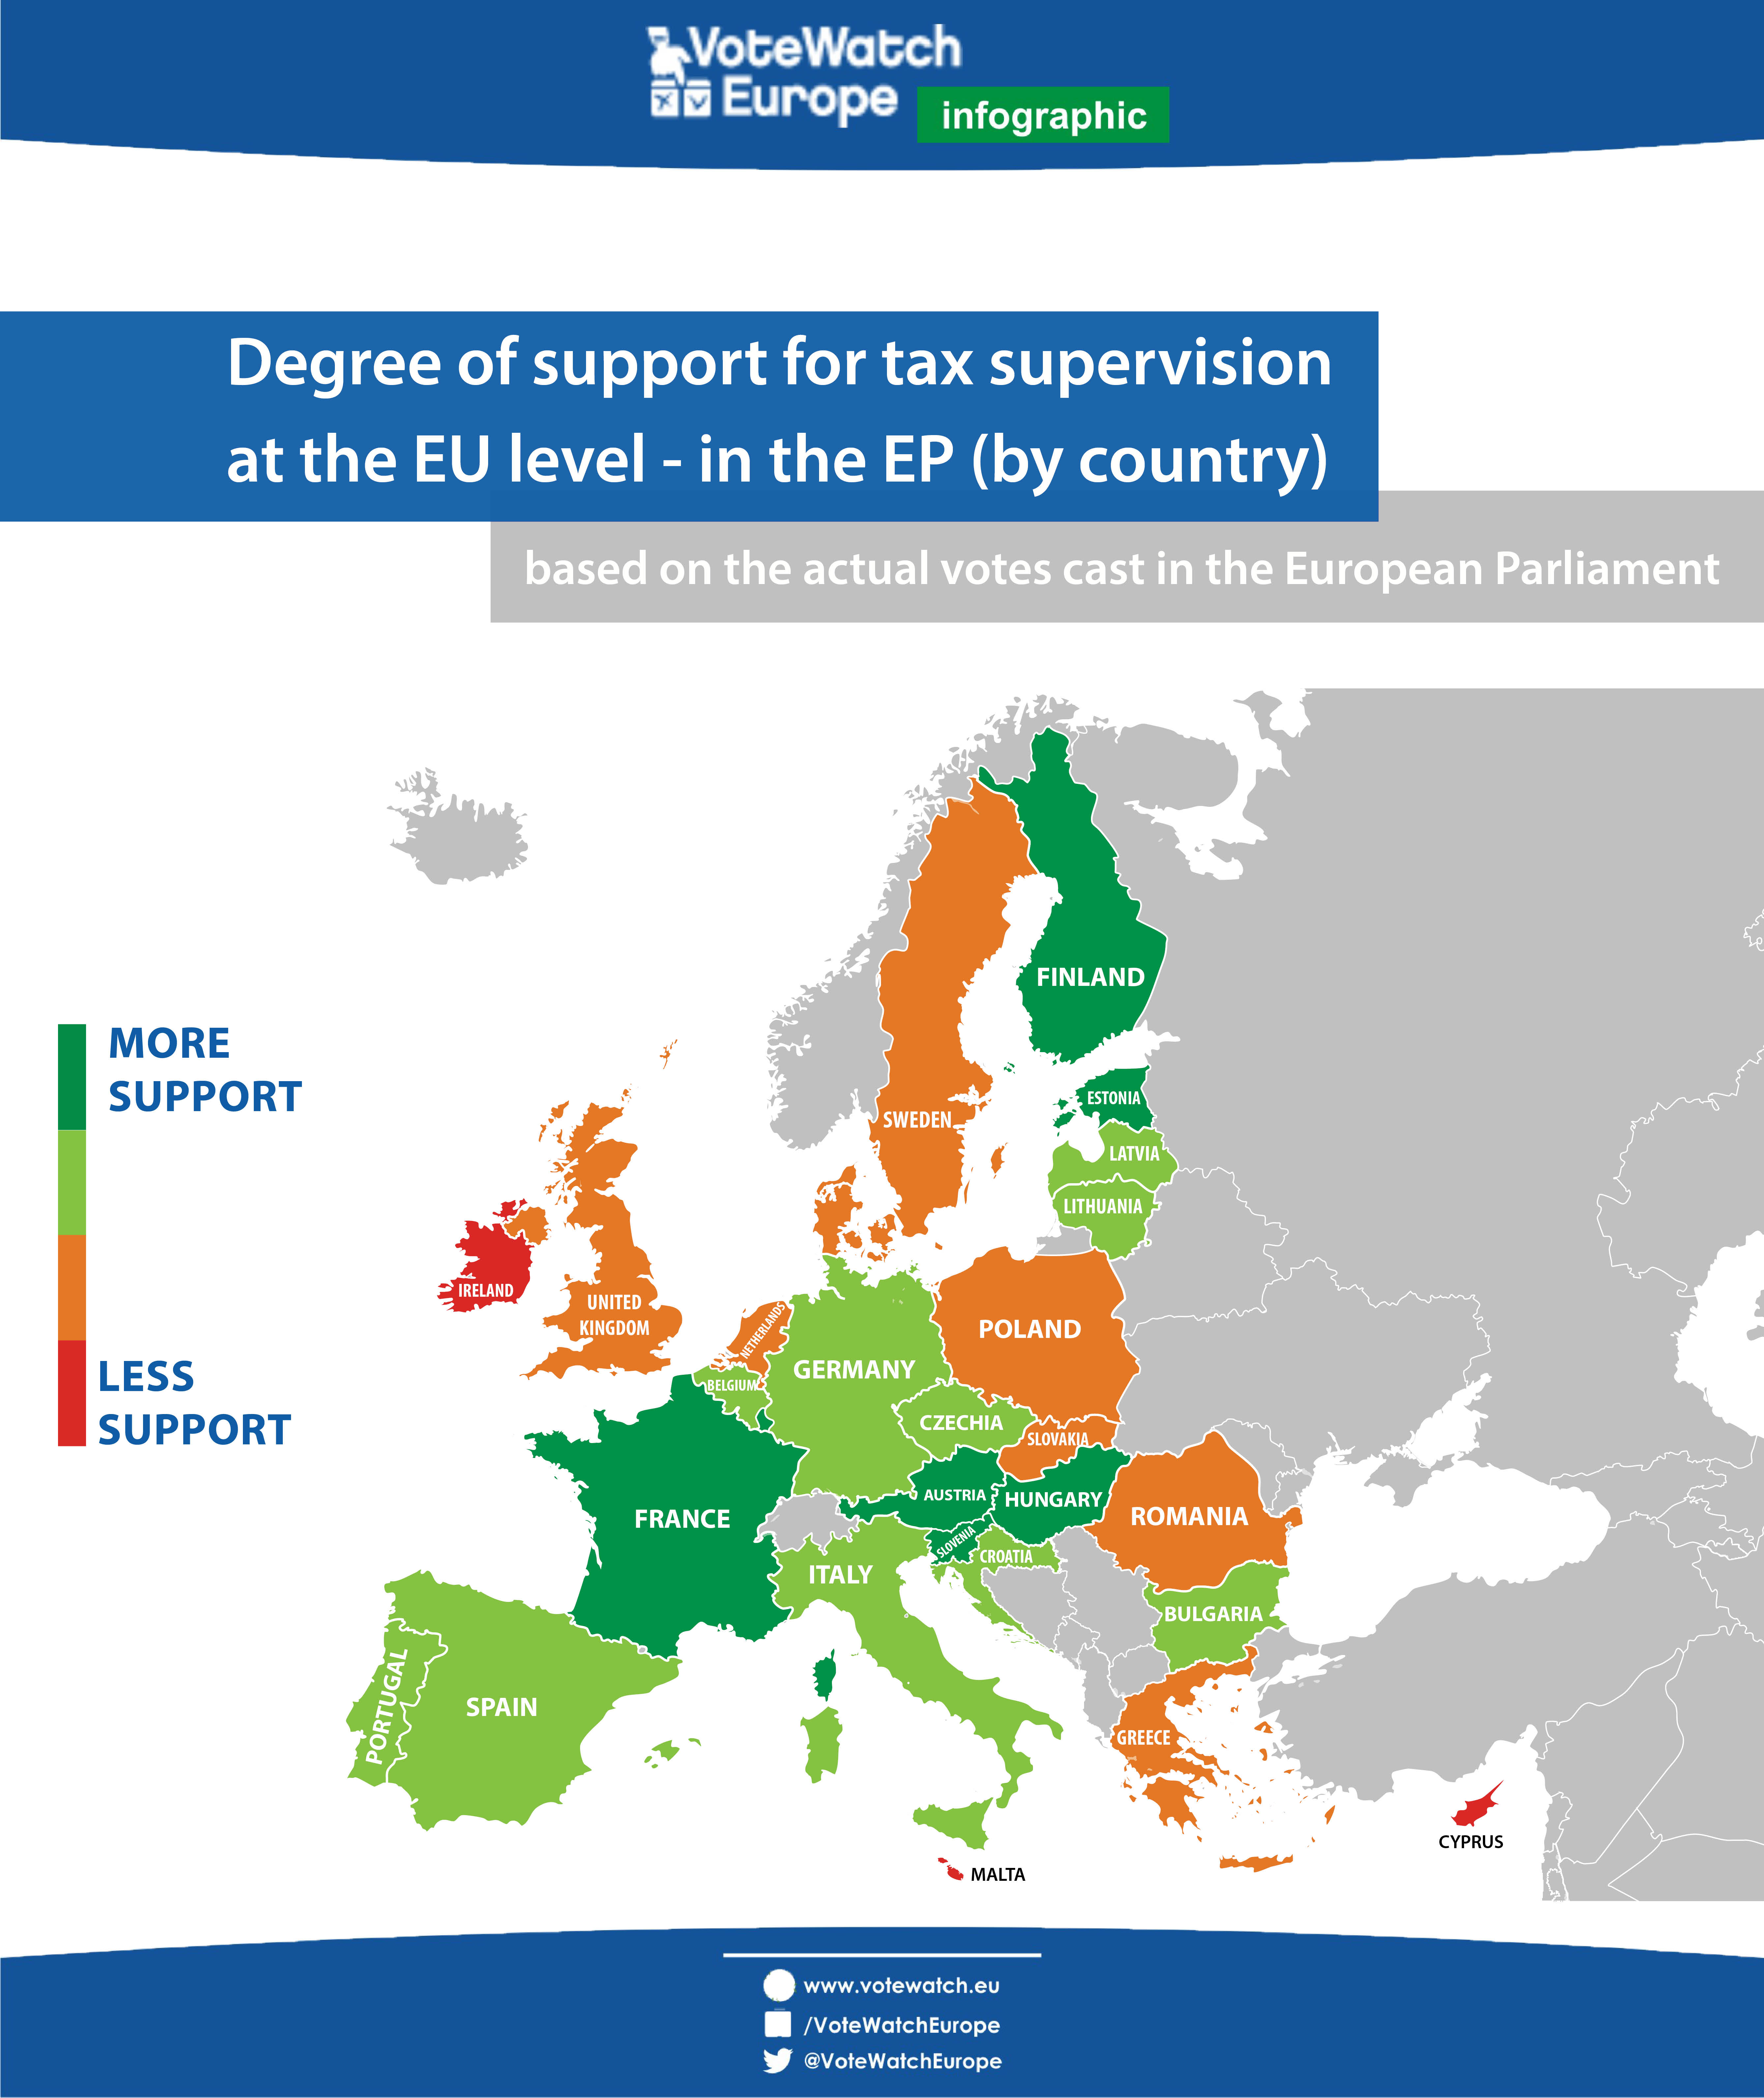 taxation-map-image2